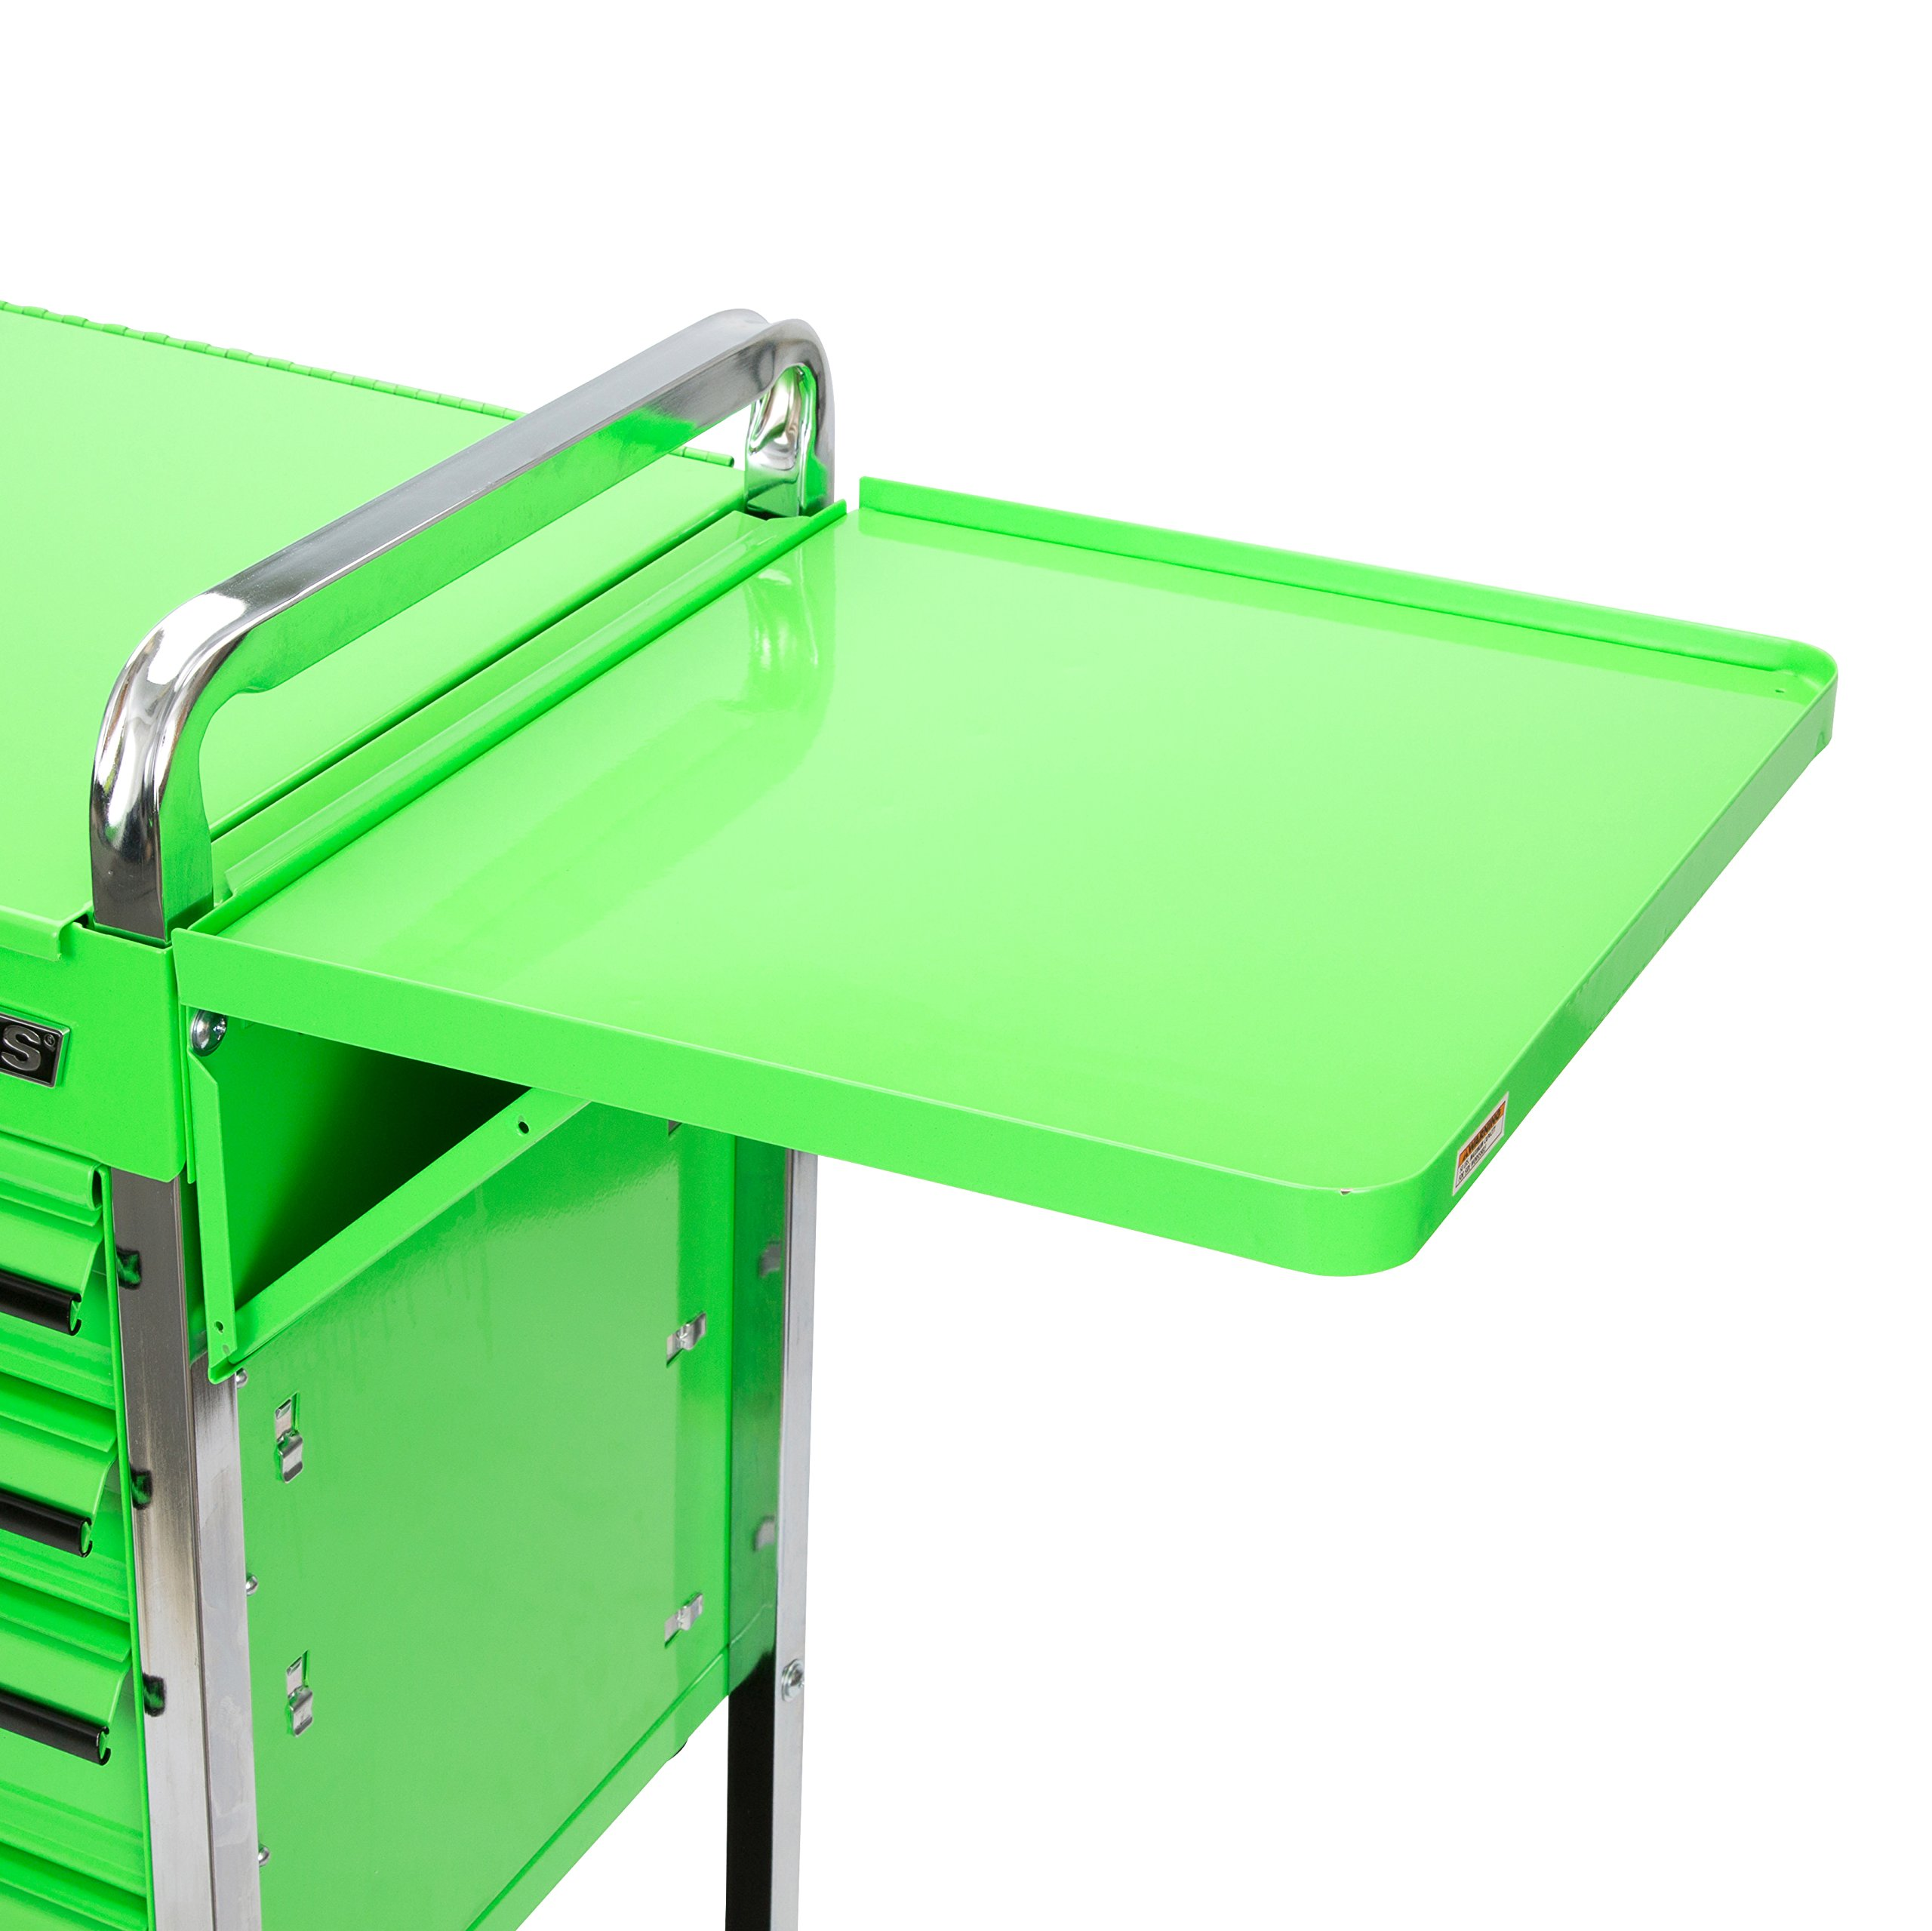 Professional Service Cart - 5 Drawer and 1 Tray (Green) by OEMTOOLS (Image #6)